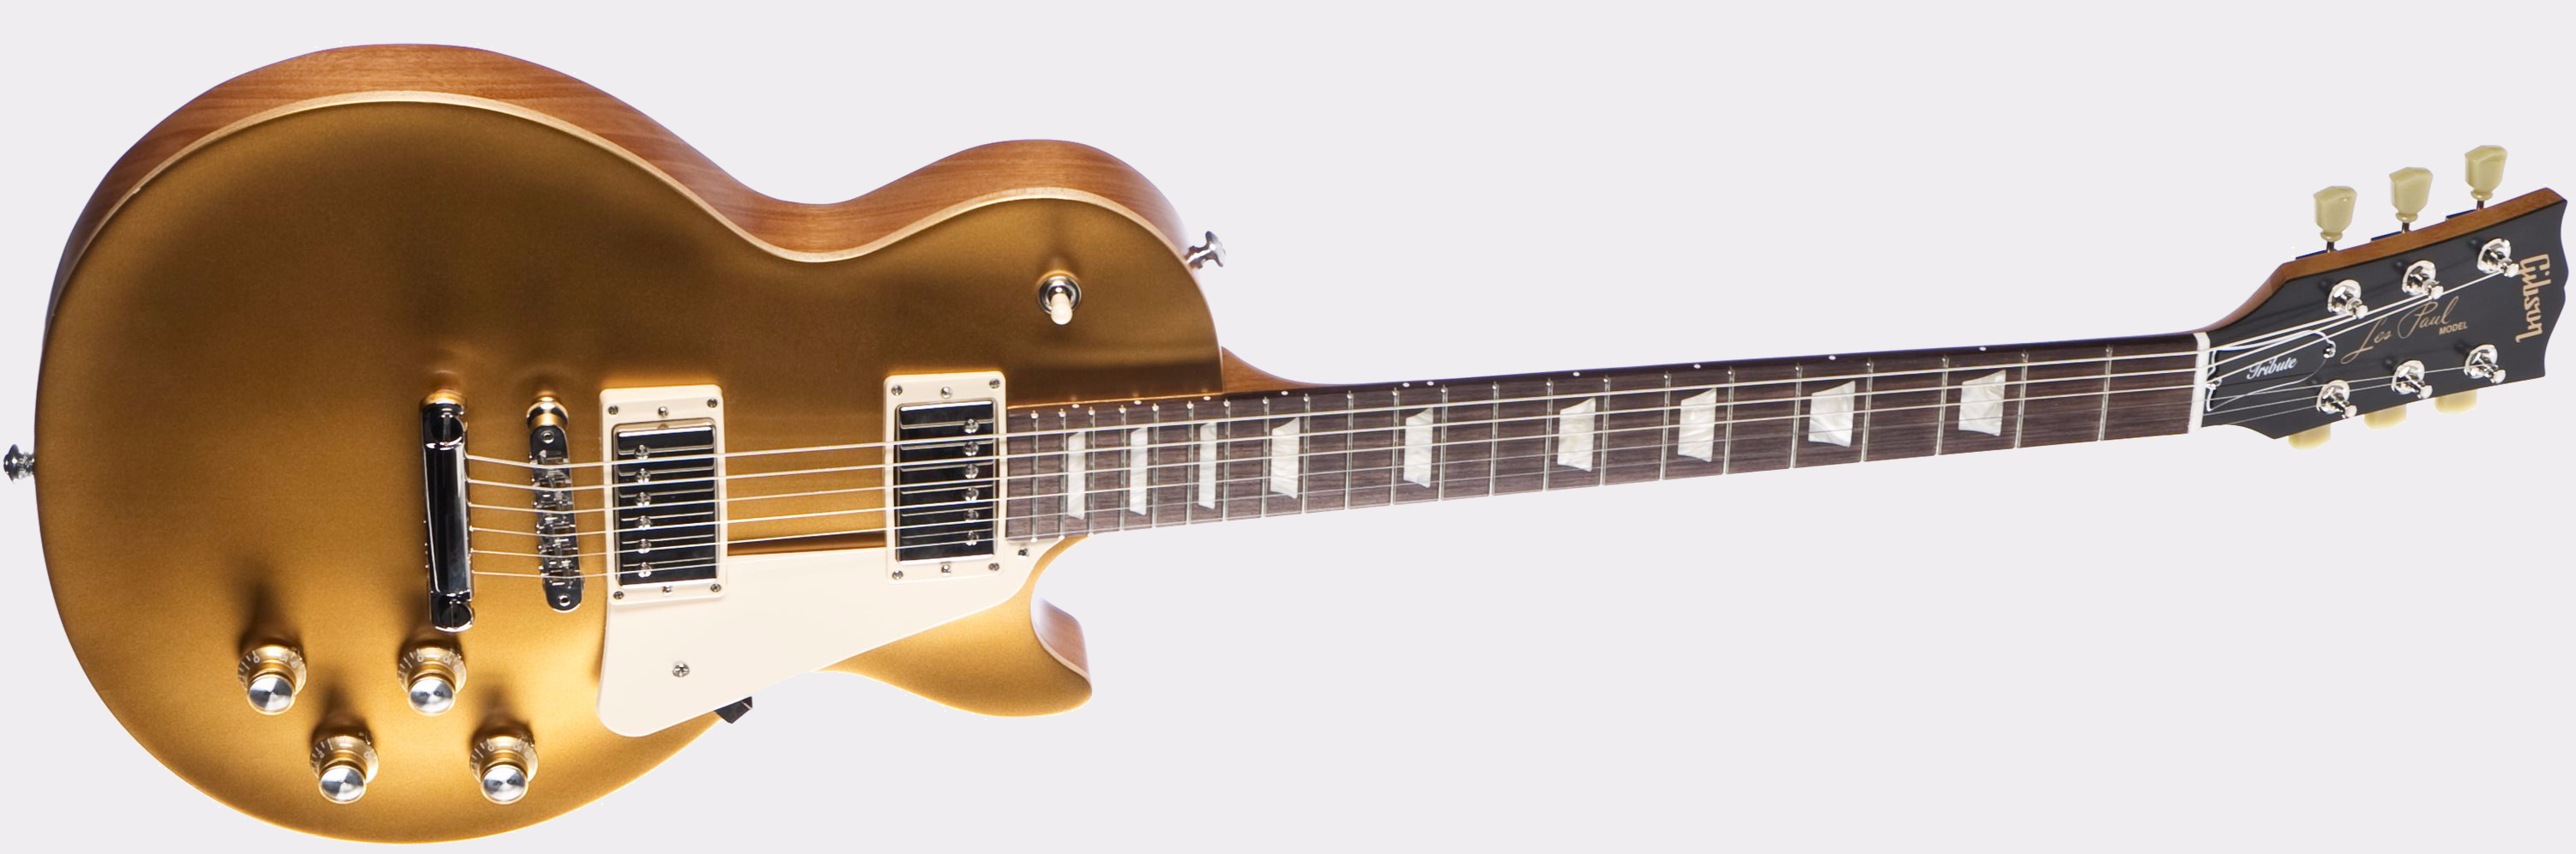 gibson les paul tribute 2017 t sgt satin gold music store professional en za. Black Bedroom Furniture Sets. Home Design Ideas